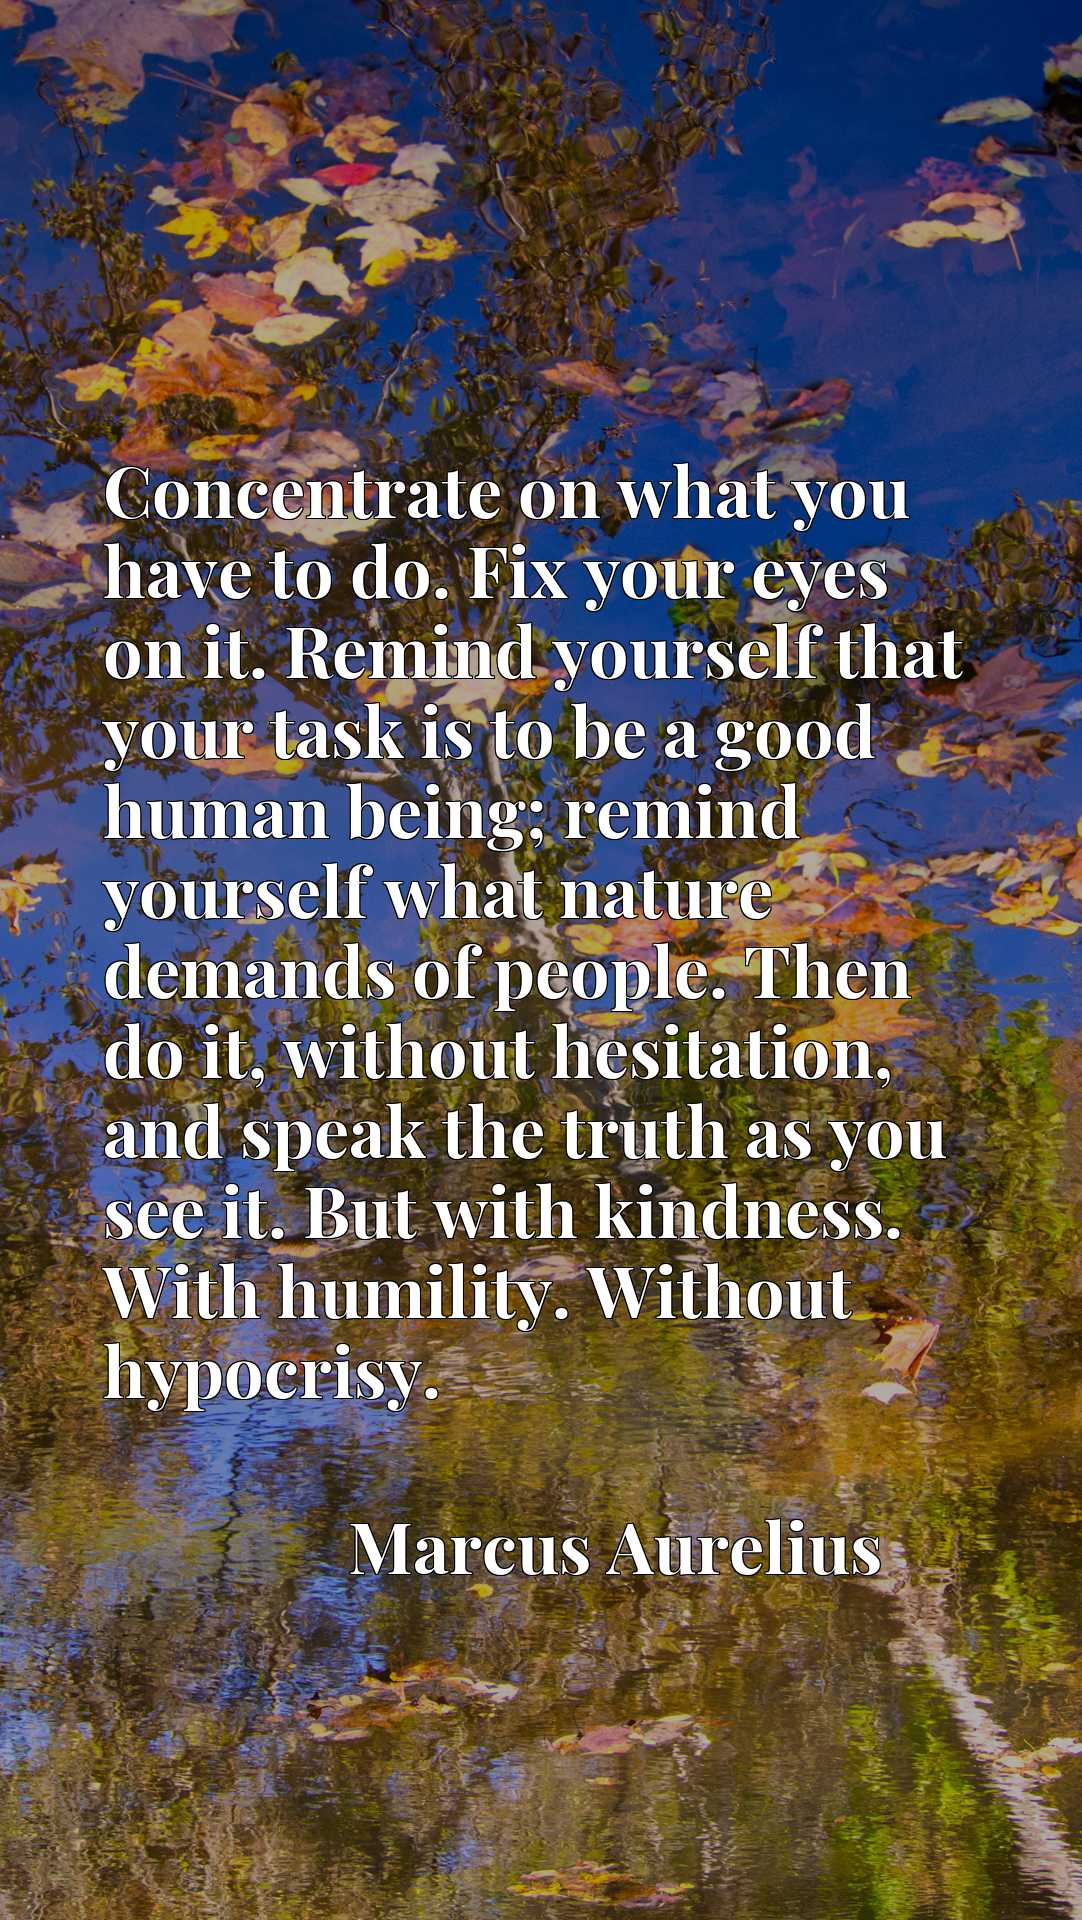 Concentrate on what you have to do. Fix your eyes on it. Remind yourself that your task is to be a good human being; remind yourself what nature demands of people. Then do it, without hesitation, and speak the truth as you see it. But with kindness. With humility. Without hypocrisy.